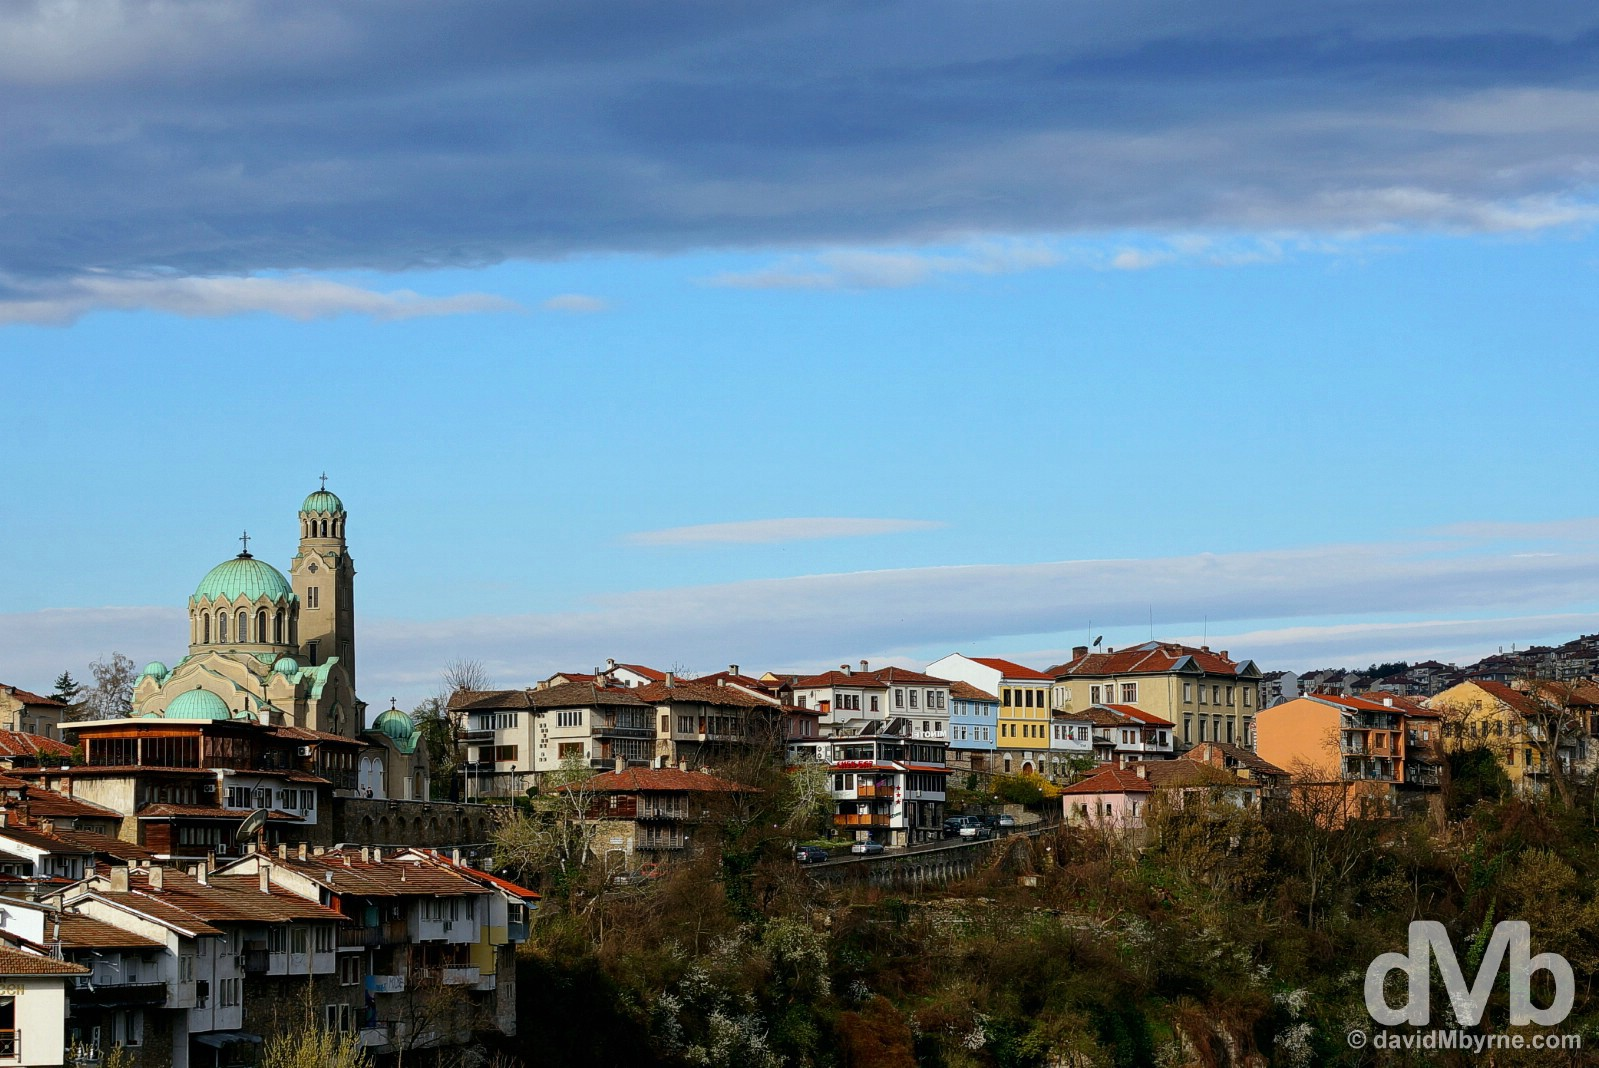 Veliko Tarnovo, Bulgaria. March 31, 2015.